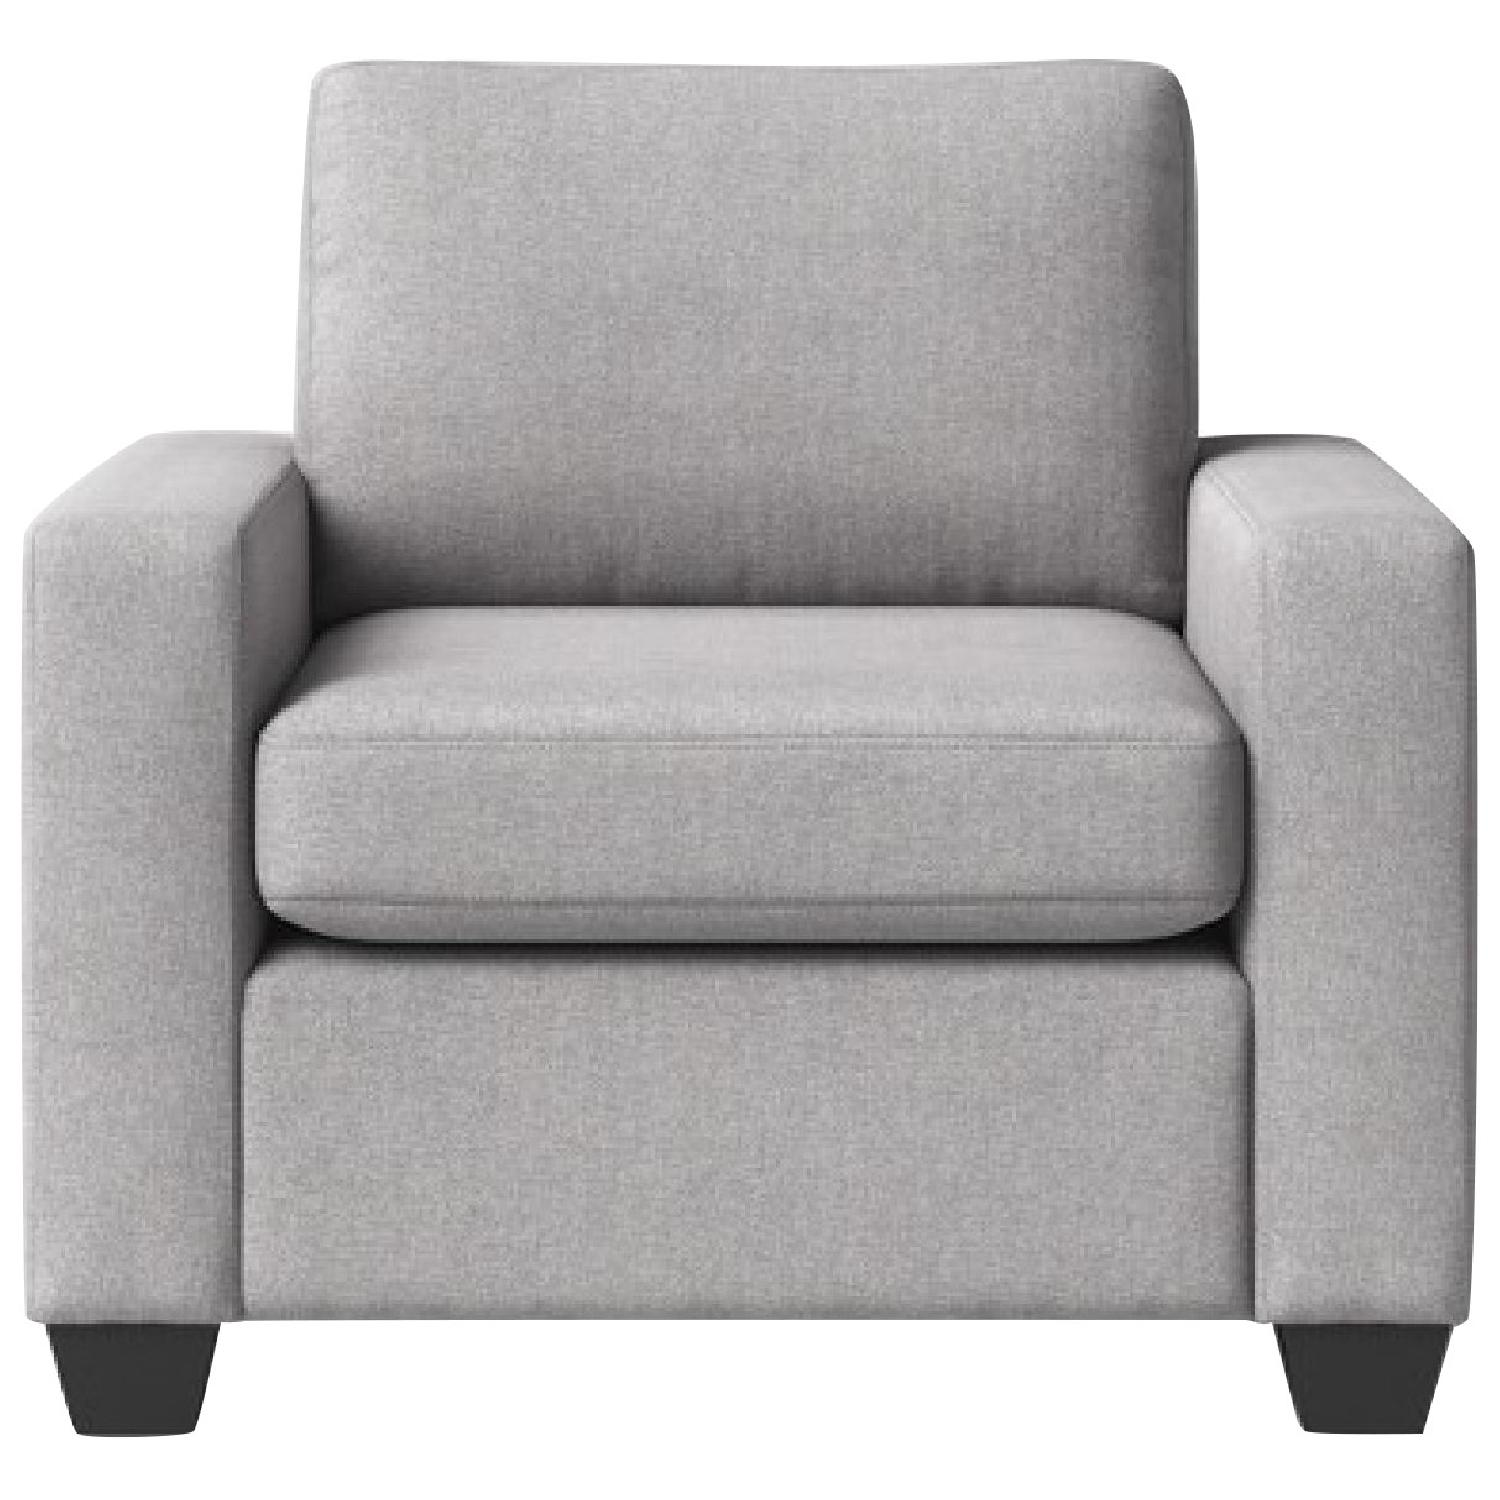 Target Threshold Barnstable Pillow Arm Swivel Chair